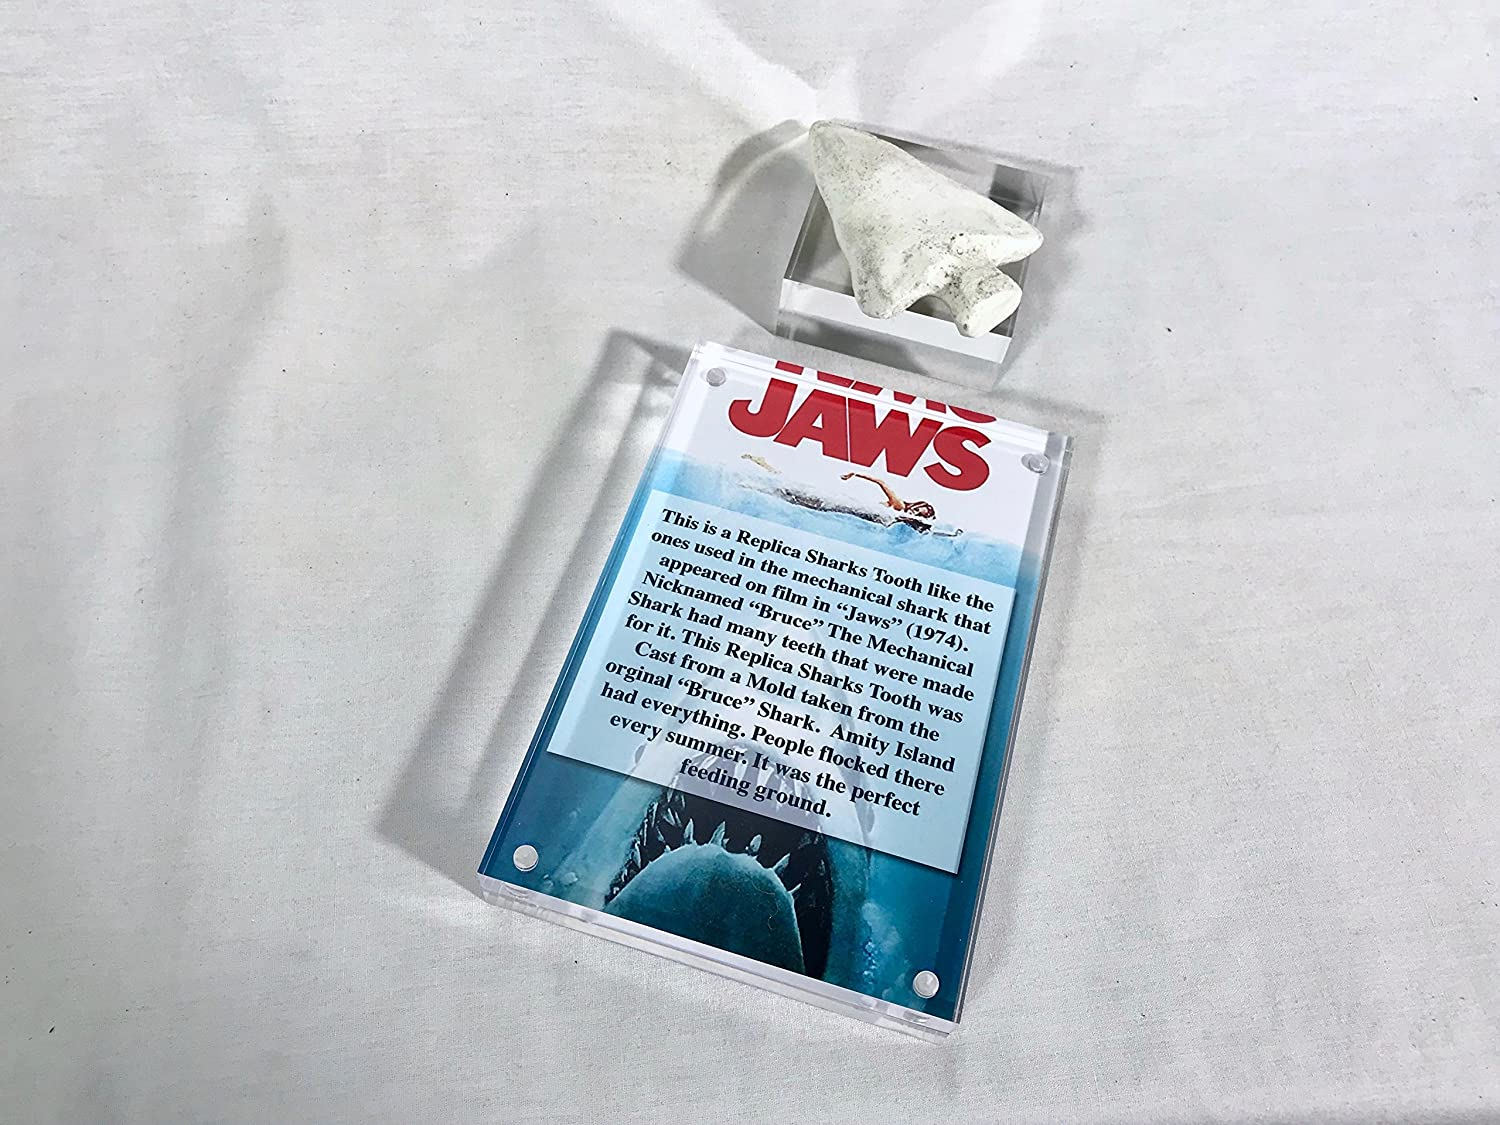 1975 JAWS Theater Movie Release REPLICA METAL SIGN GREAT WHITE SHARK